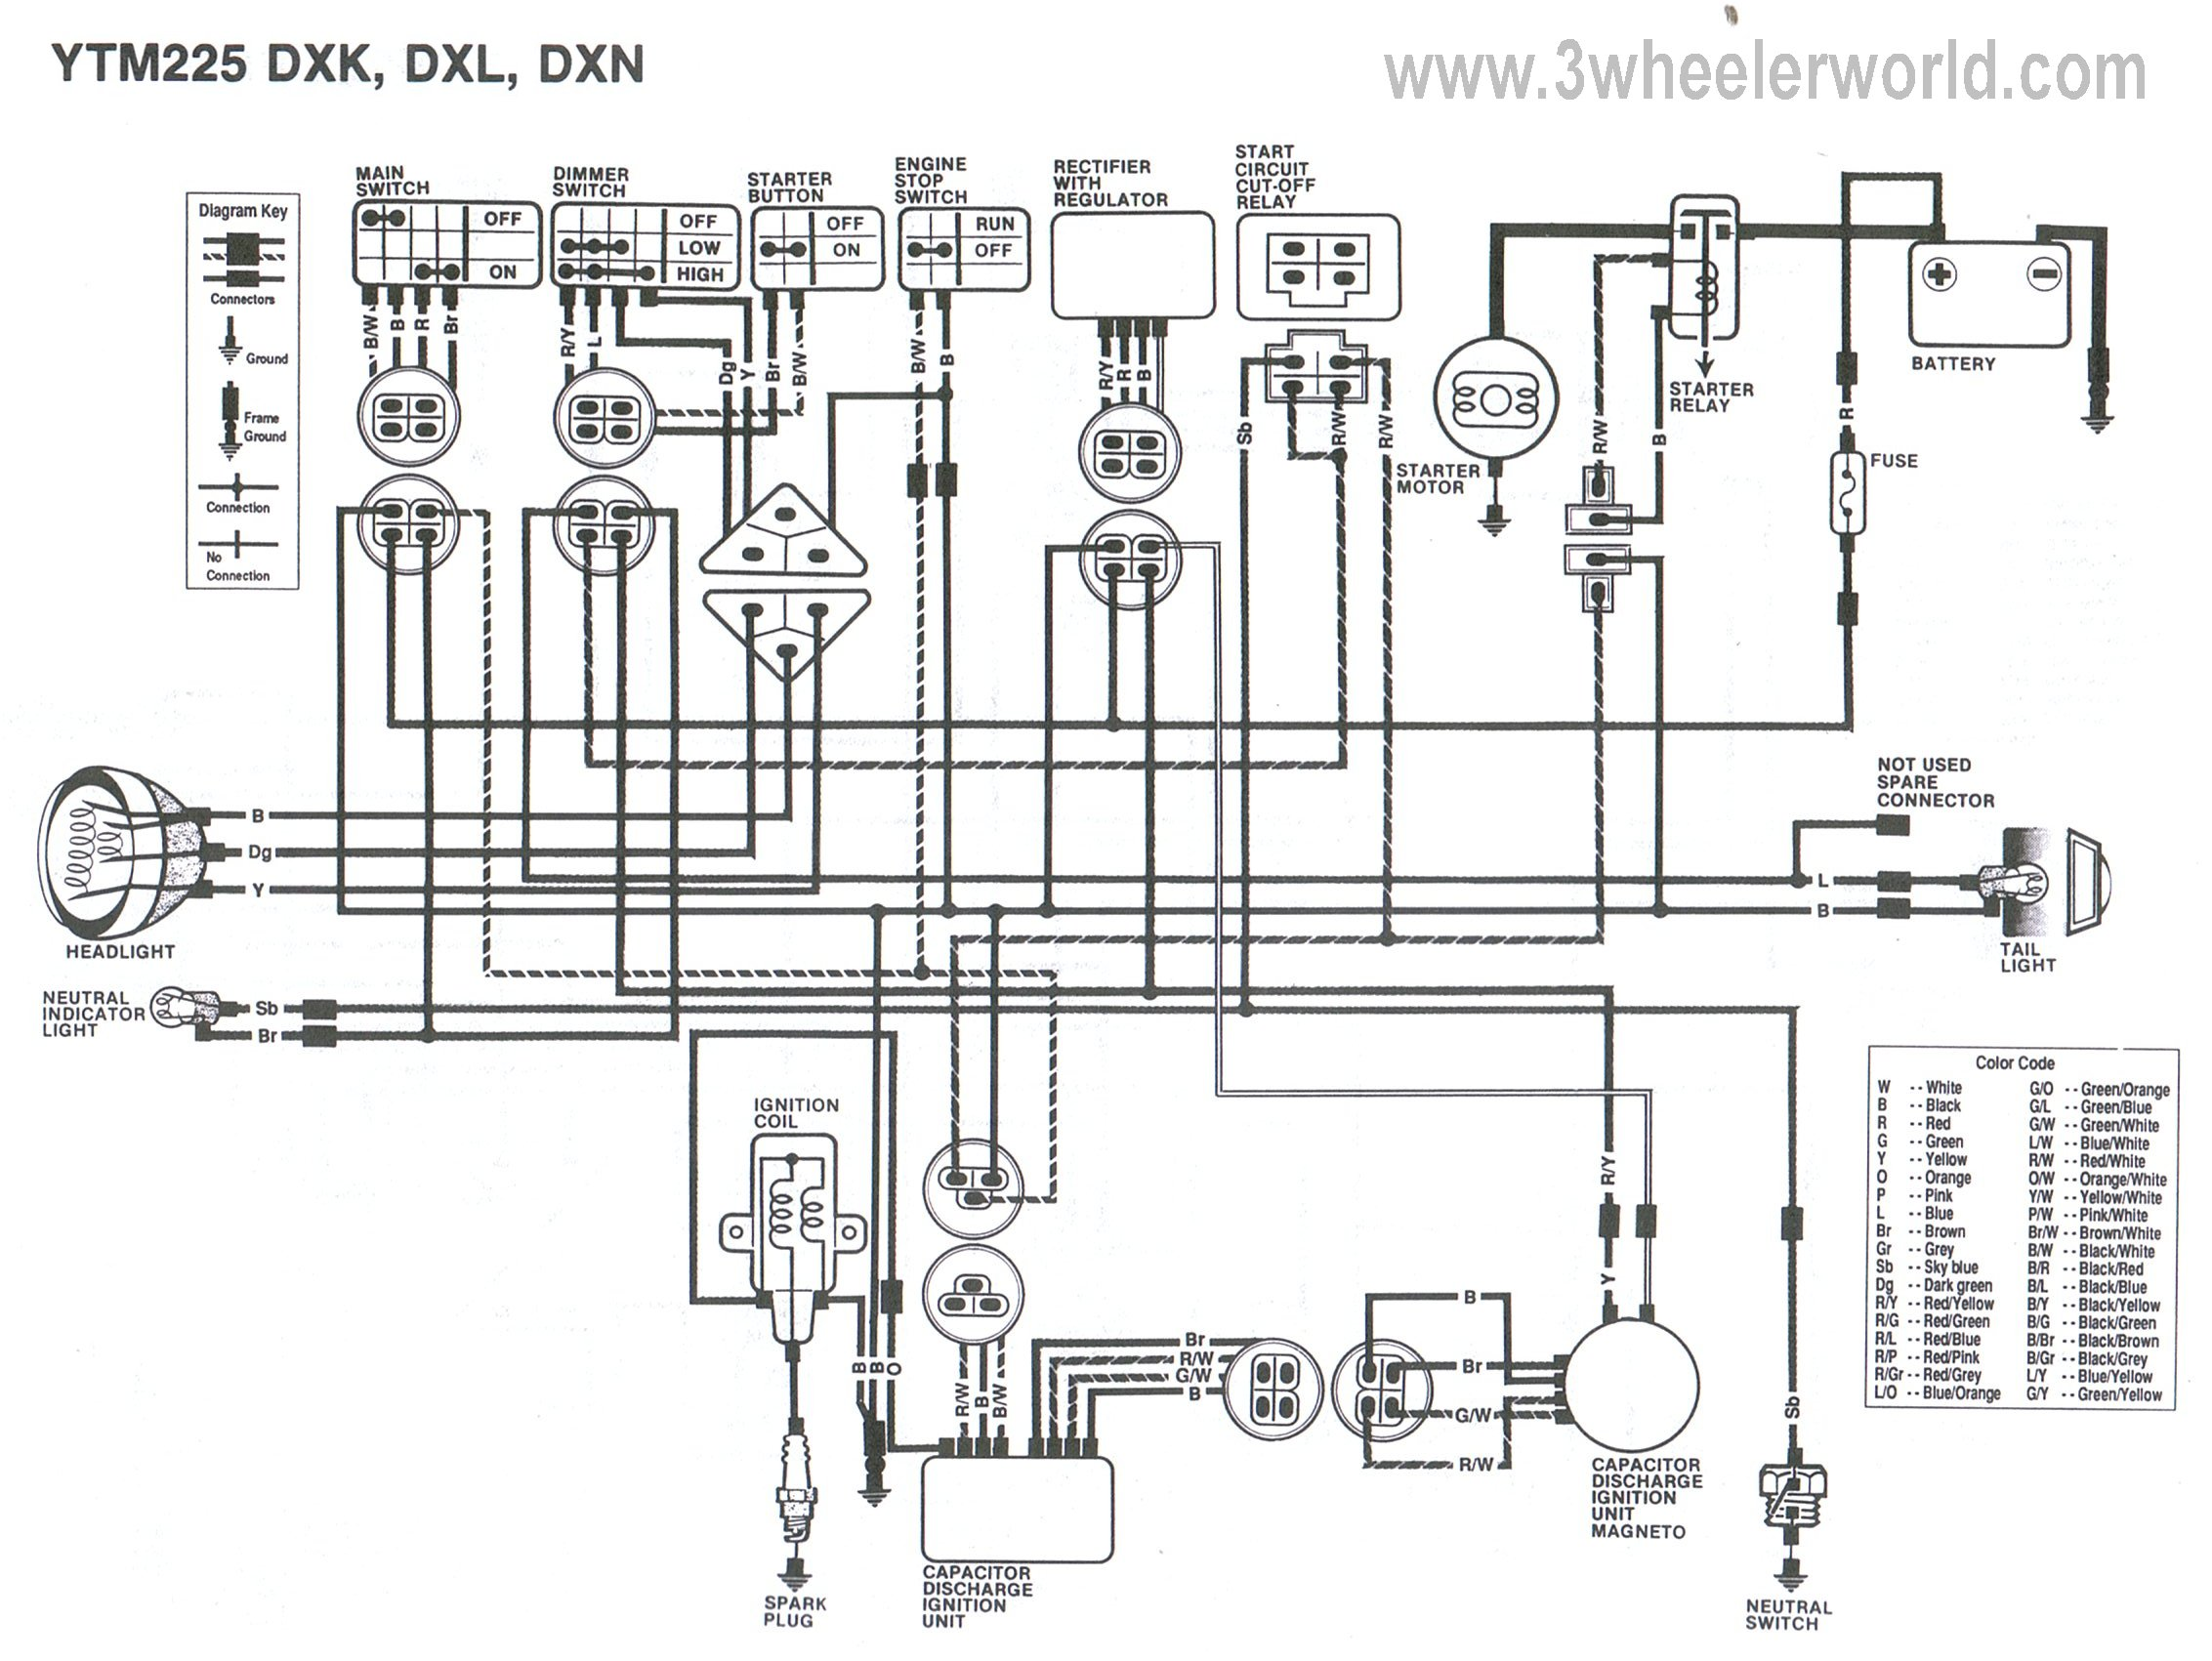 YTM225DXKDXLDXN wiring diagram for peterbilt 379 the wiring diagram readingrat net Yamaha 150 Outboard Wiring Diagram at gsmx.co